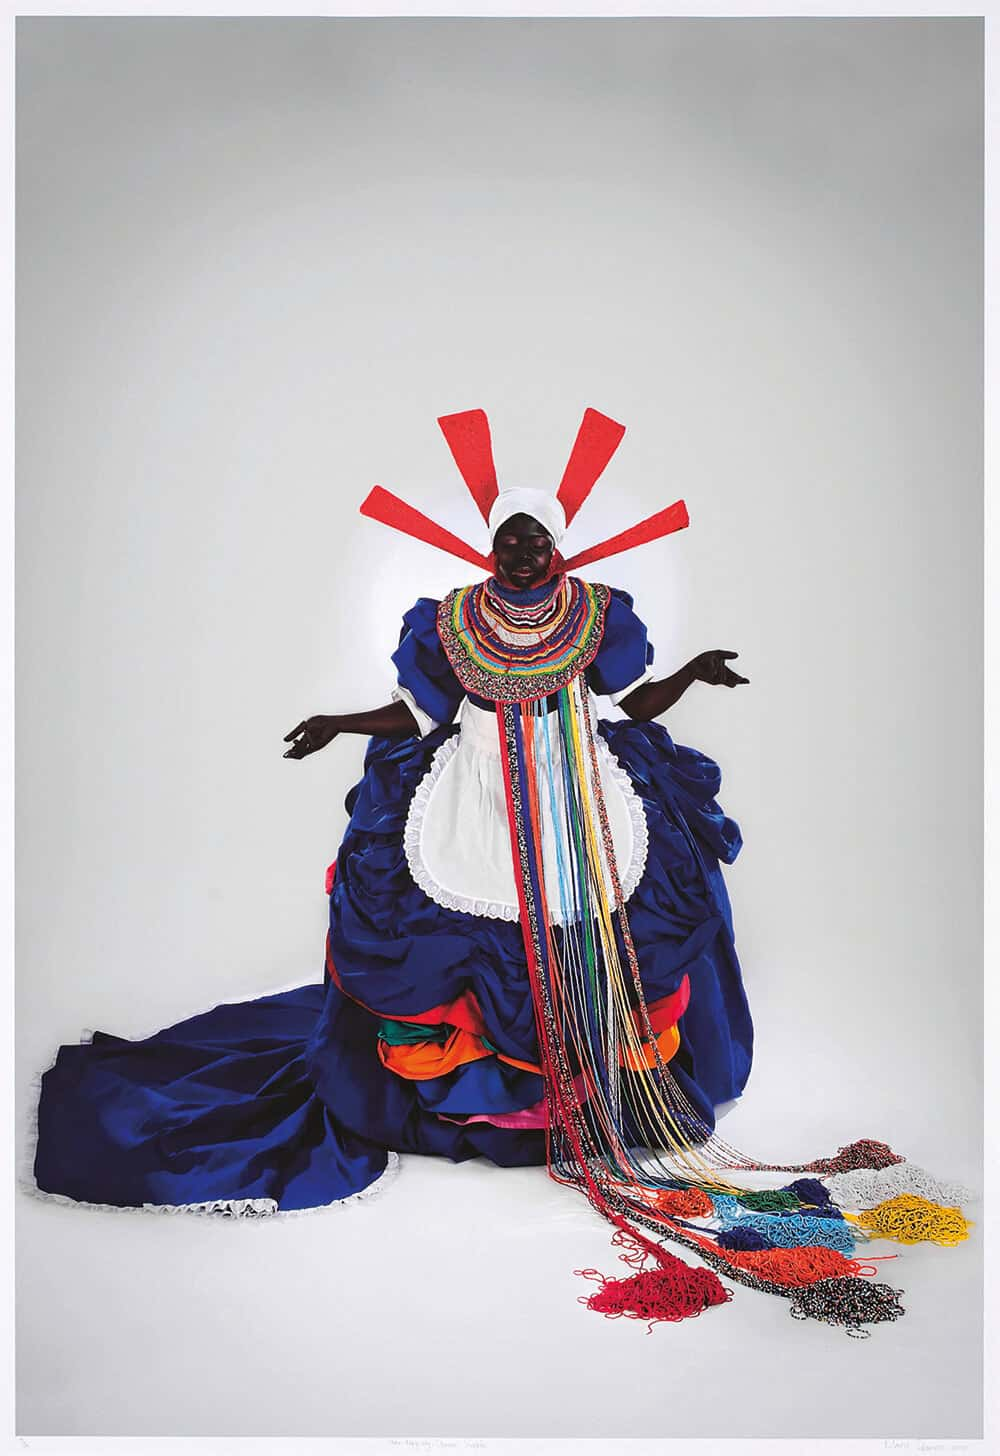 Lot 71. Mary Sibande, Her Majesty, Queen Sophie. Colour digital print. Image size: 104 x 69cm. R 120 000 - 160 000.